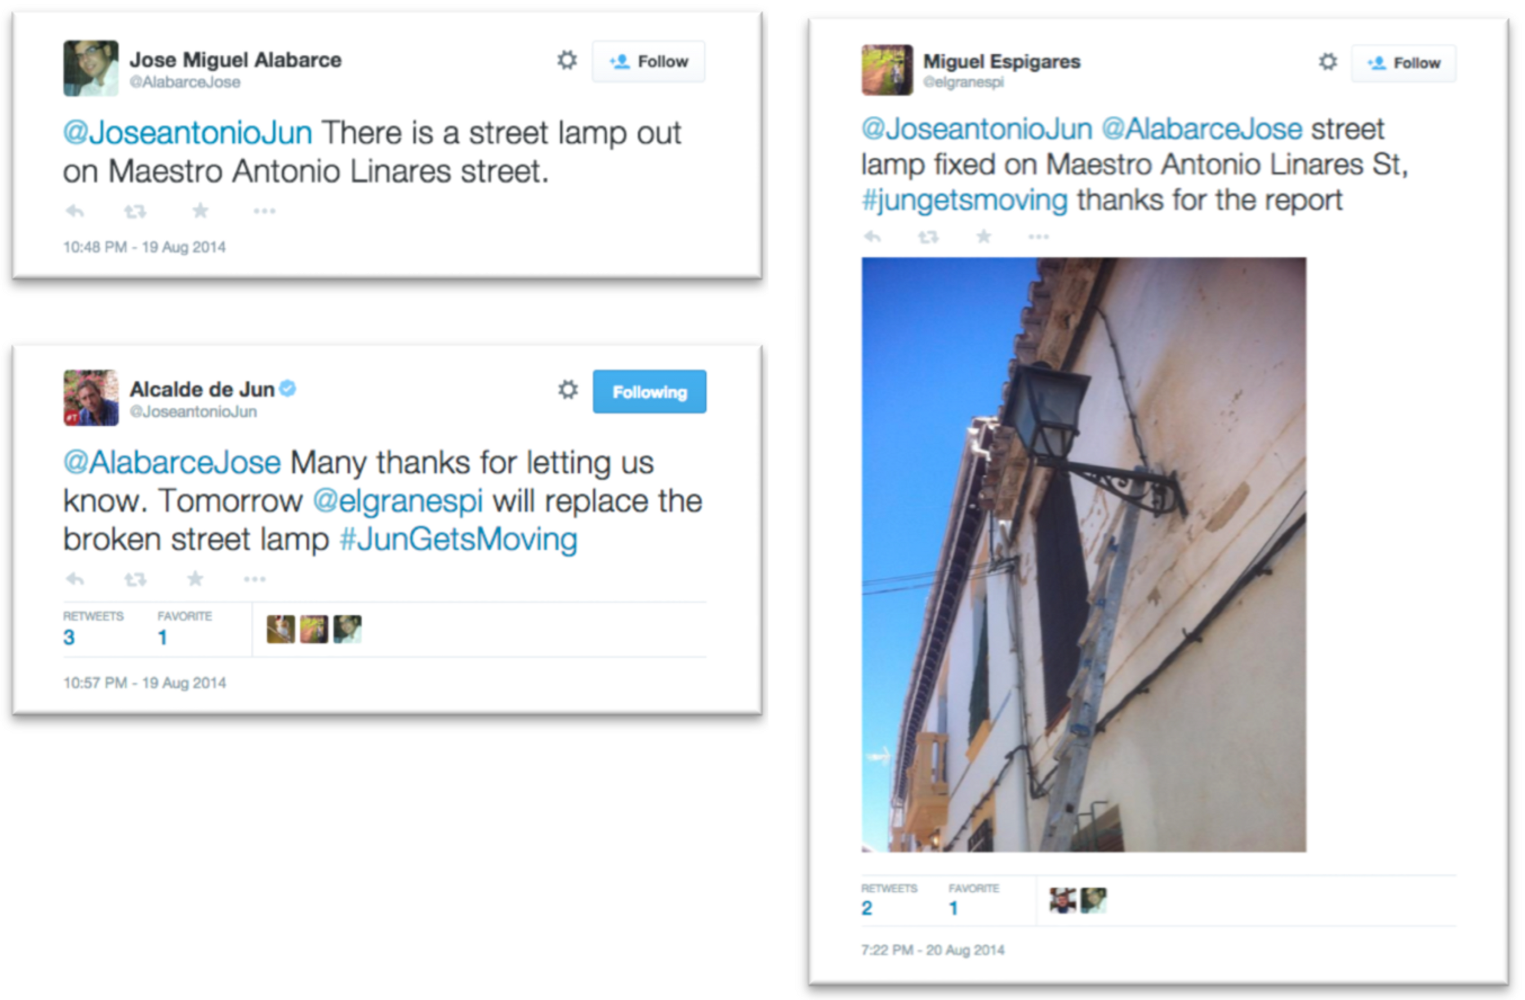 A citizen alerts the mayor to a broken street lamp. Two tweets later, it's fixed.